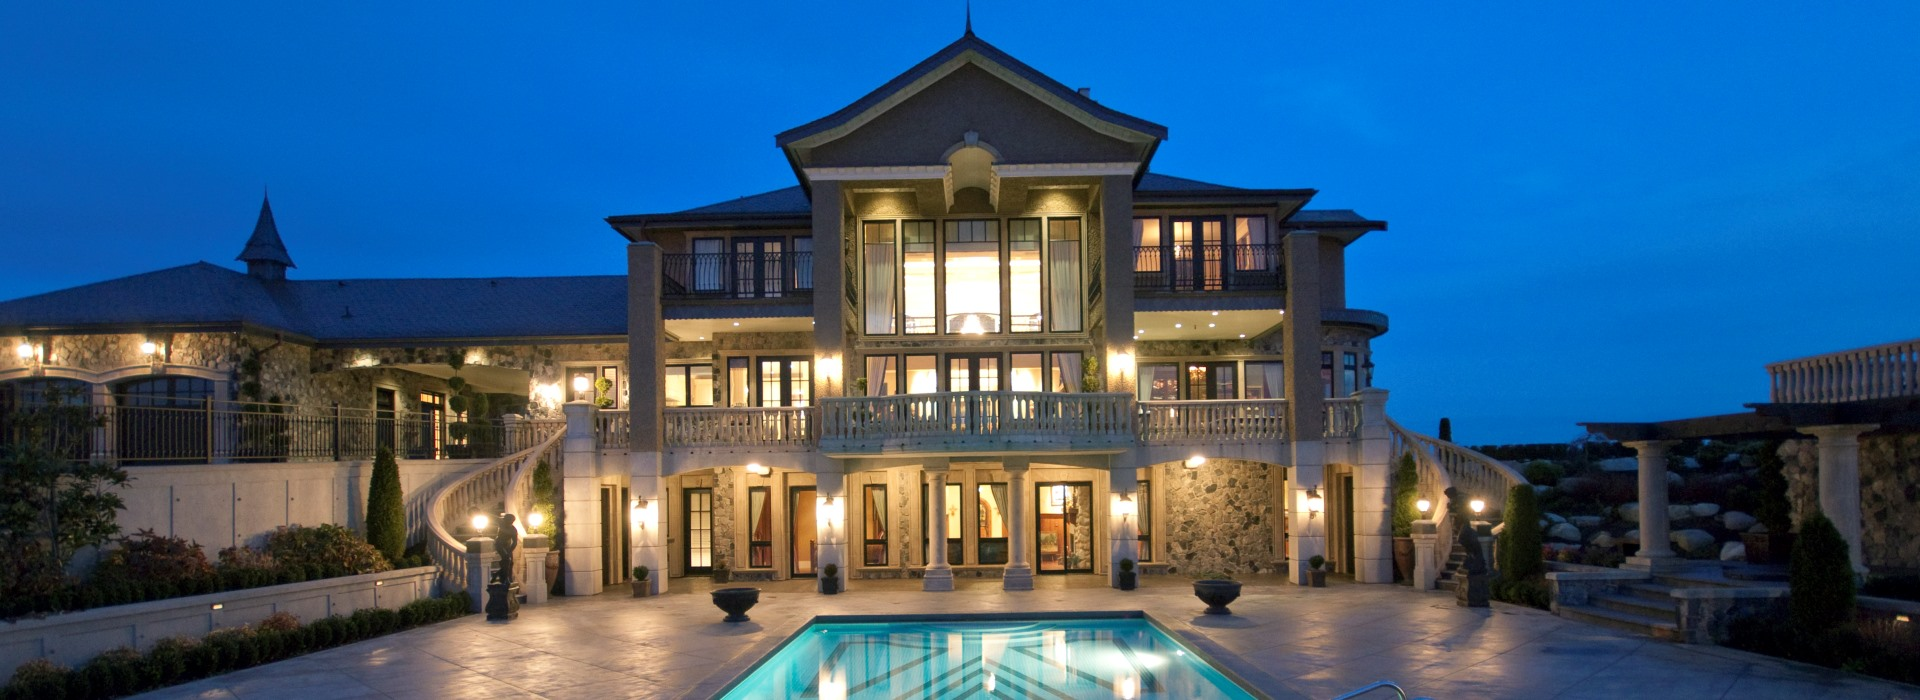 West Vancouver Real Estate | West Vancouver Realtor